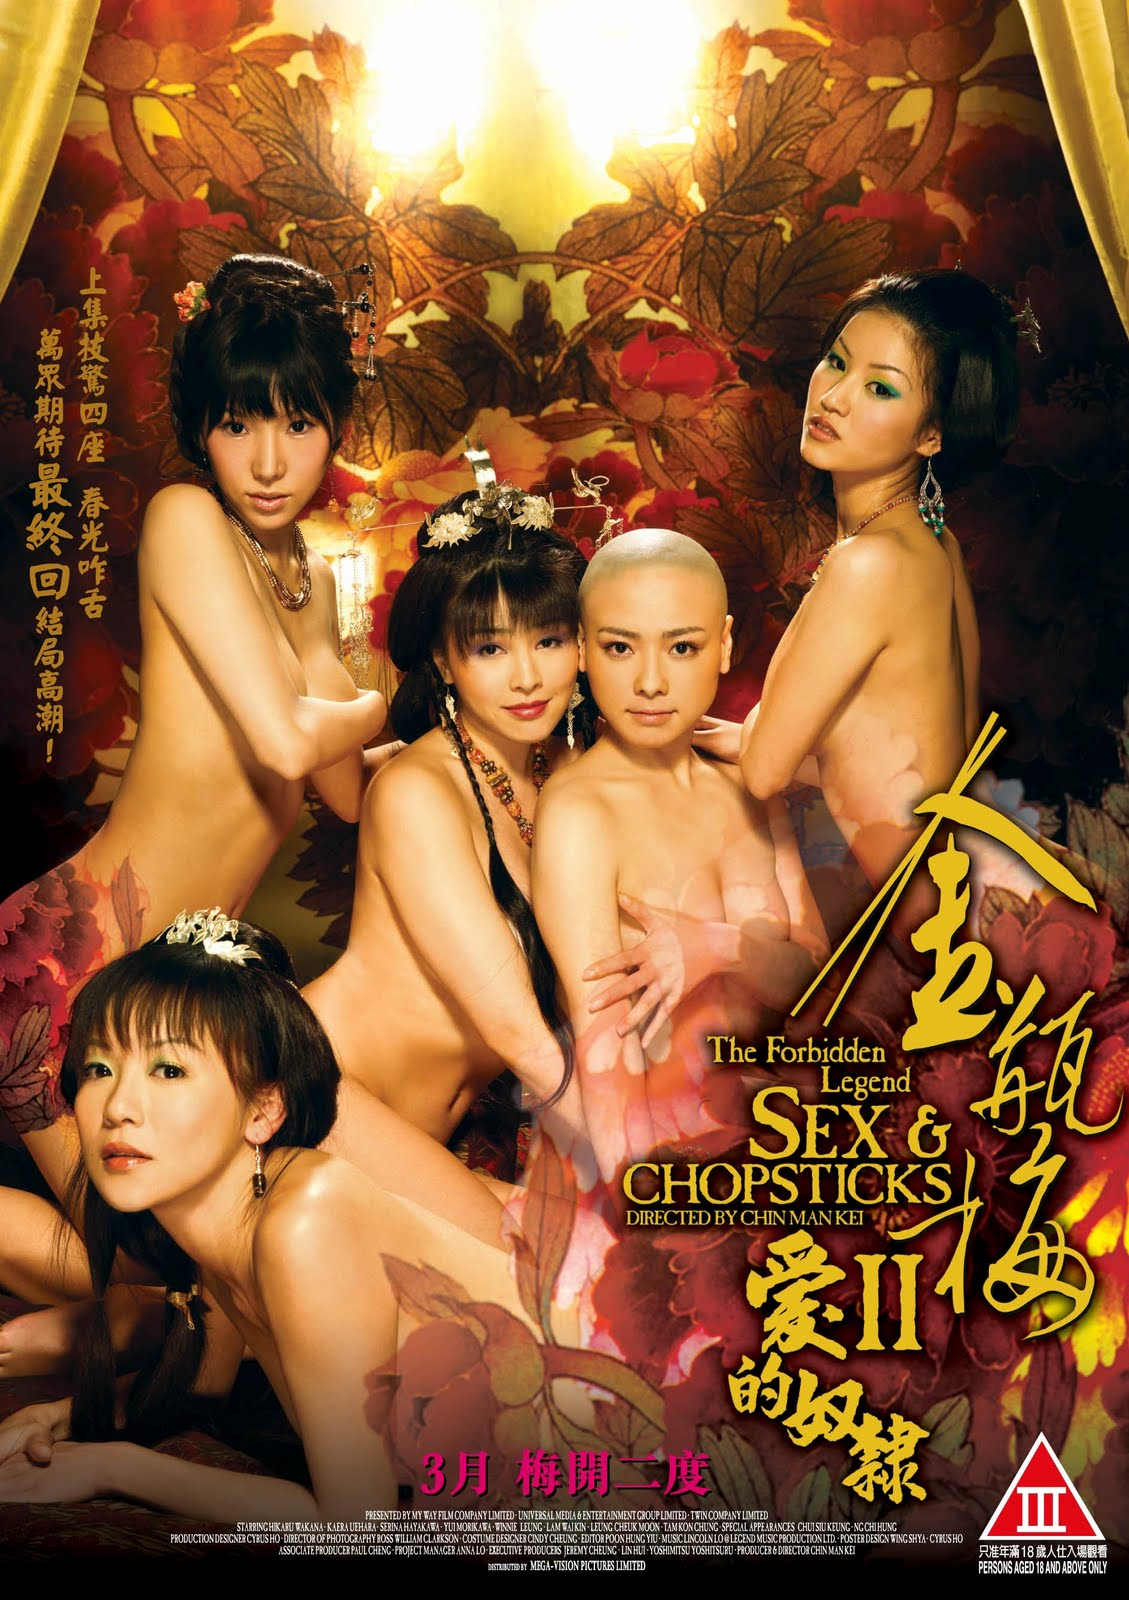 forbidden legend sex and chopsticks poster 01 ... Valentine picture gallery | full length movie at Monster Cock Junkies